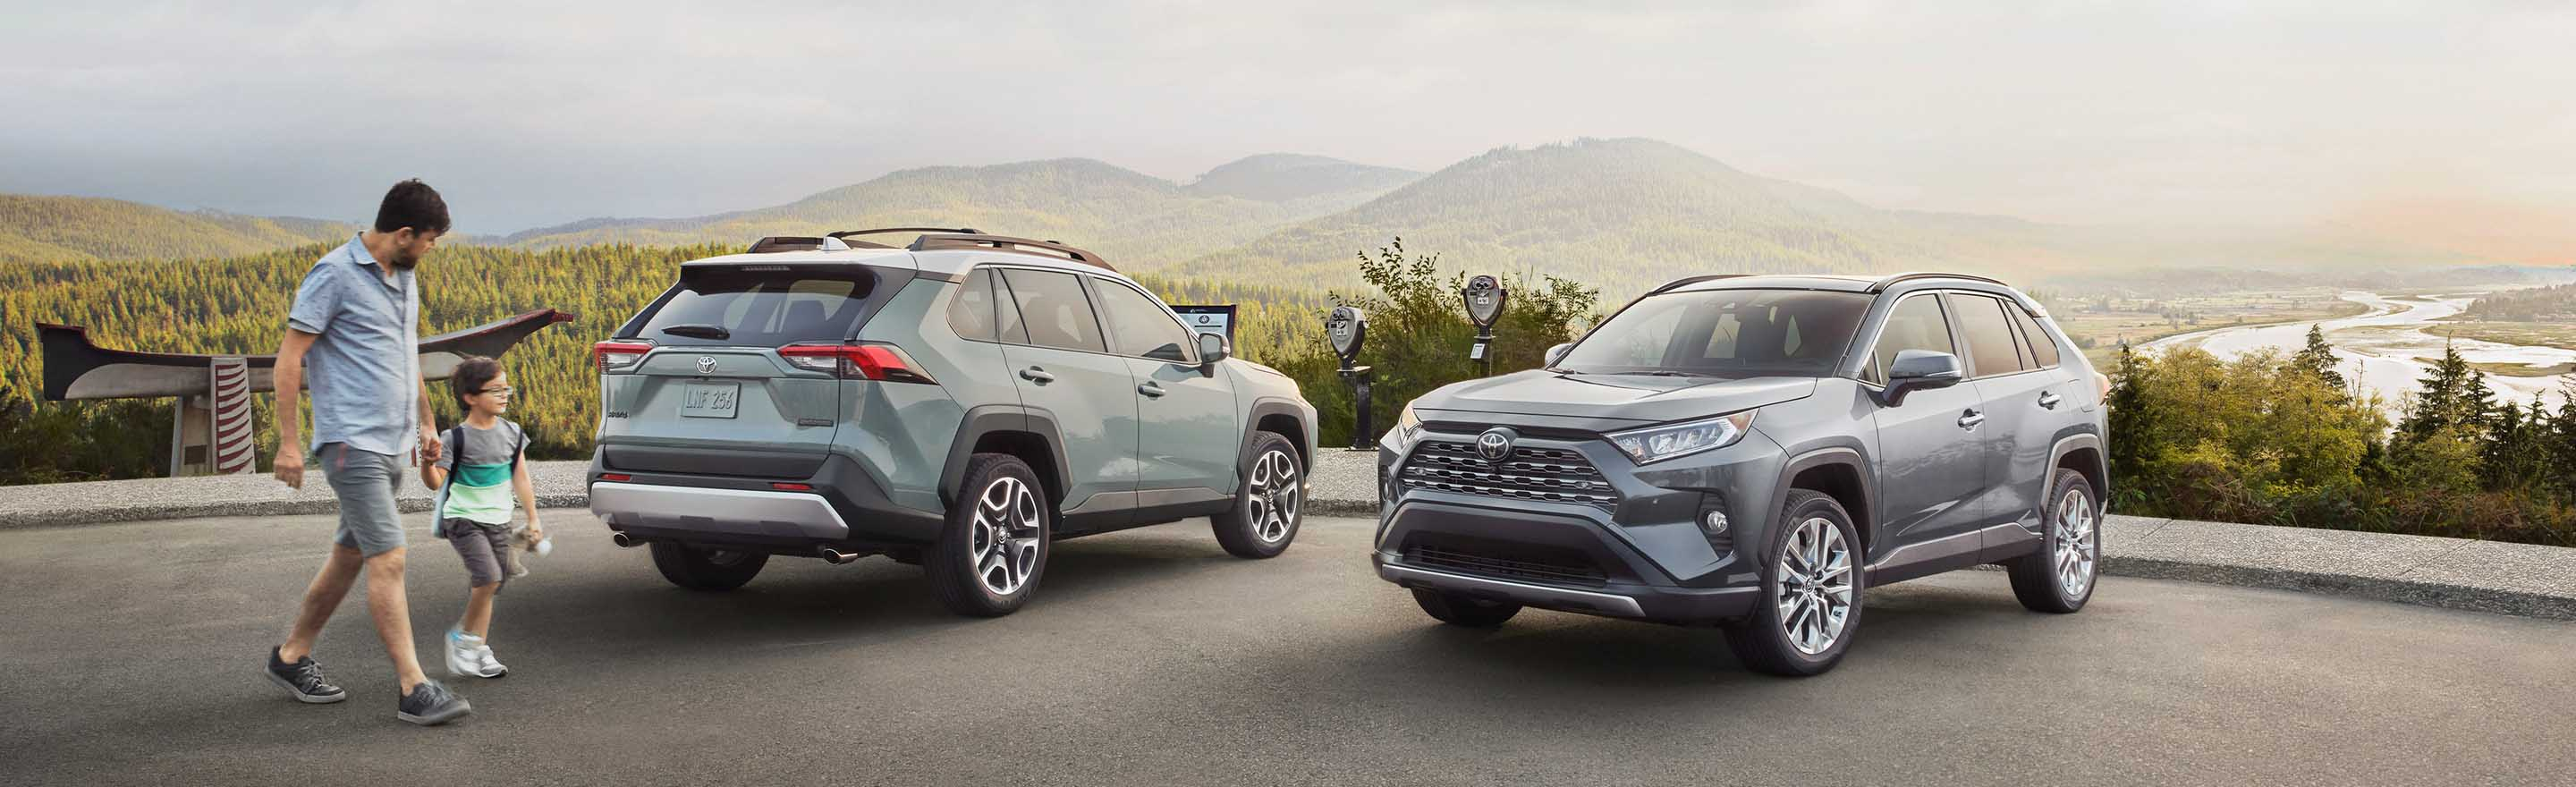 Explore the All-New 2019 Toyota RAV4 SUV in Denison, TX